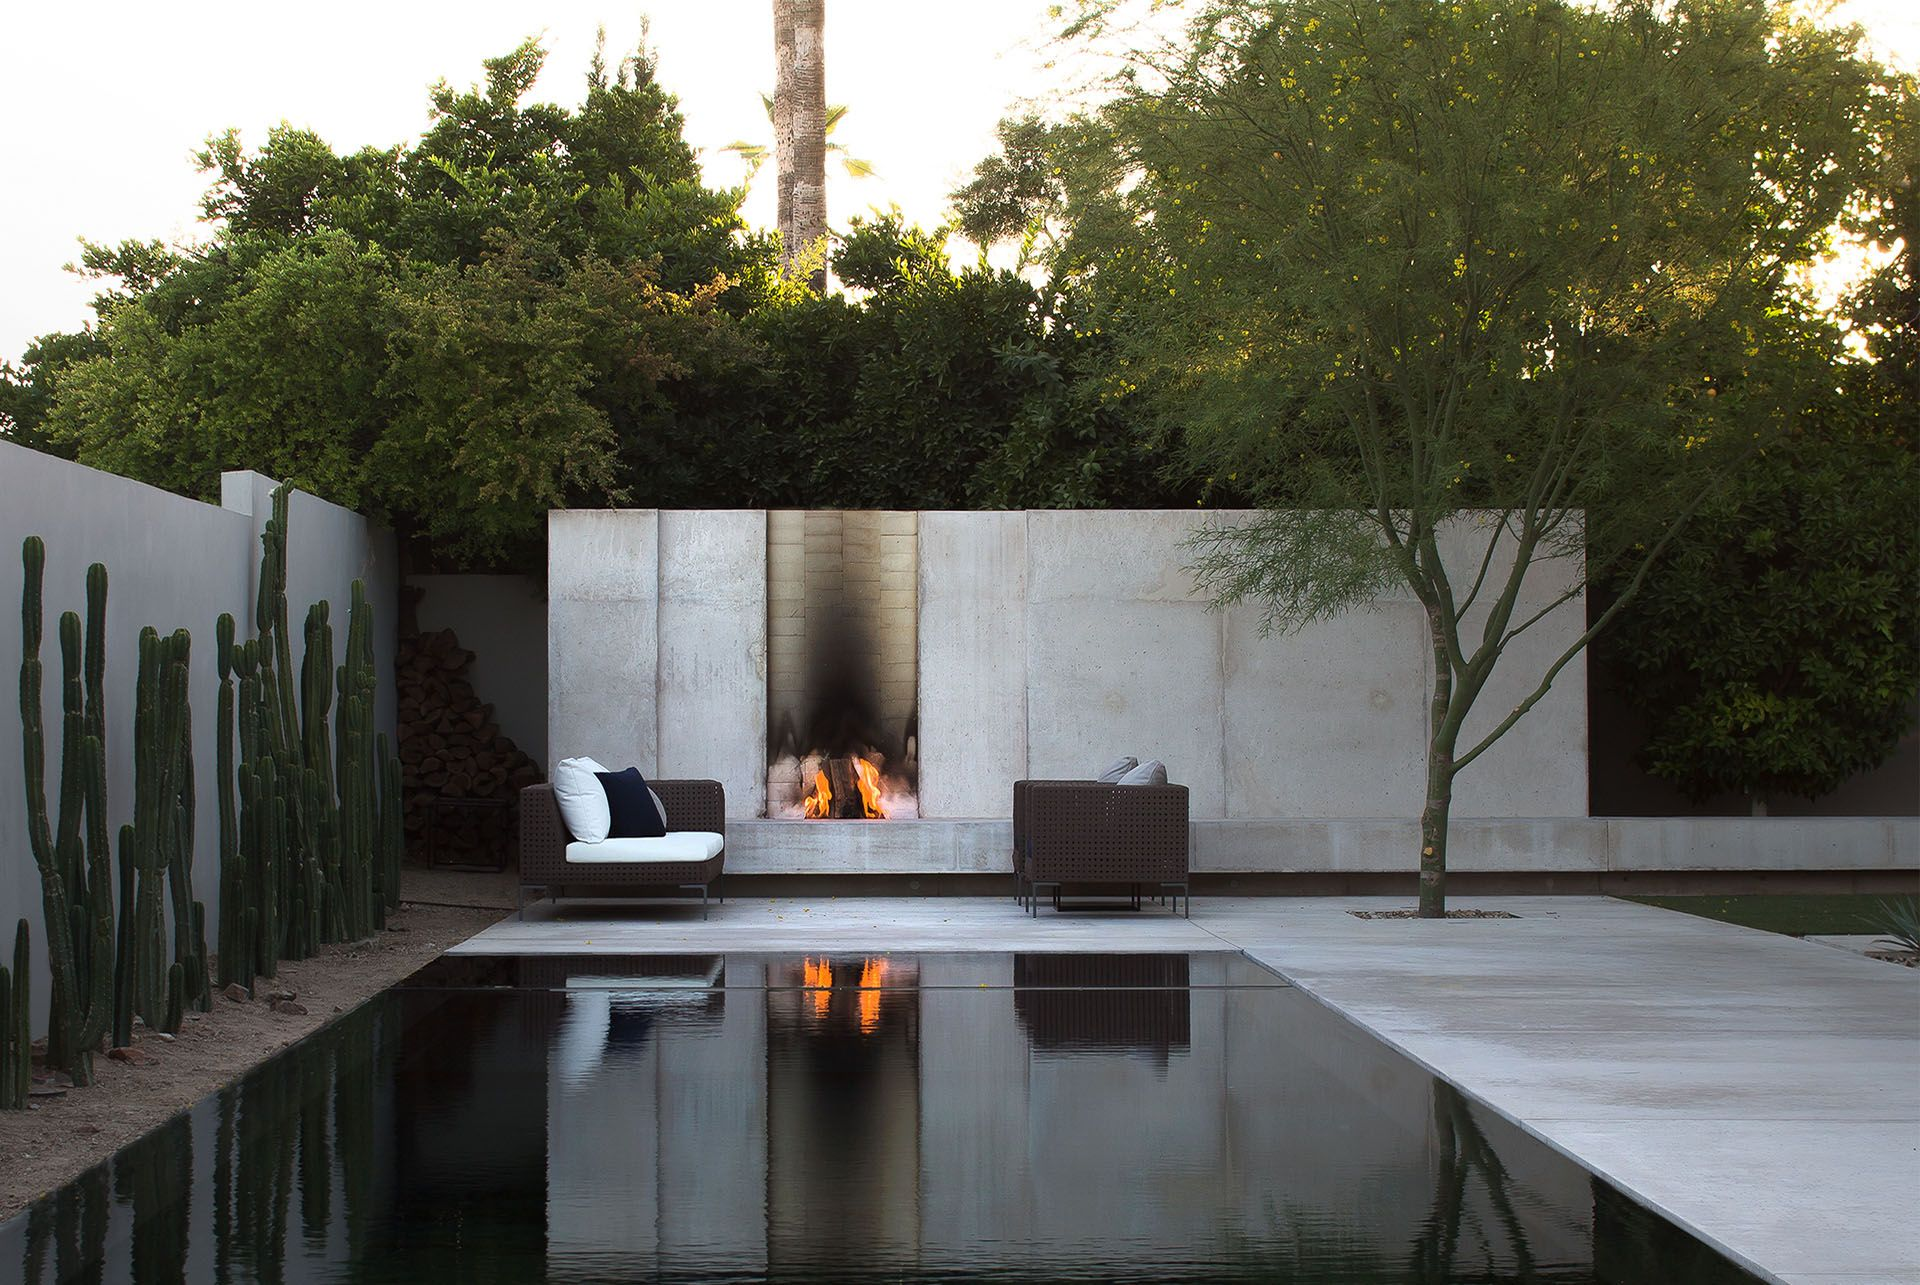 Minimalist design landscape art architecture full imagas for Minimalist concrete house